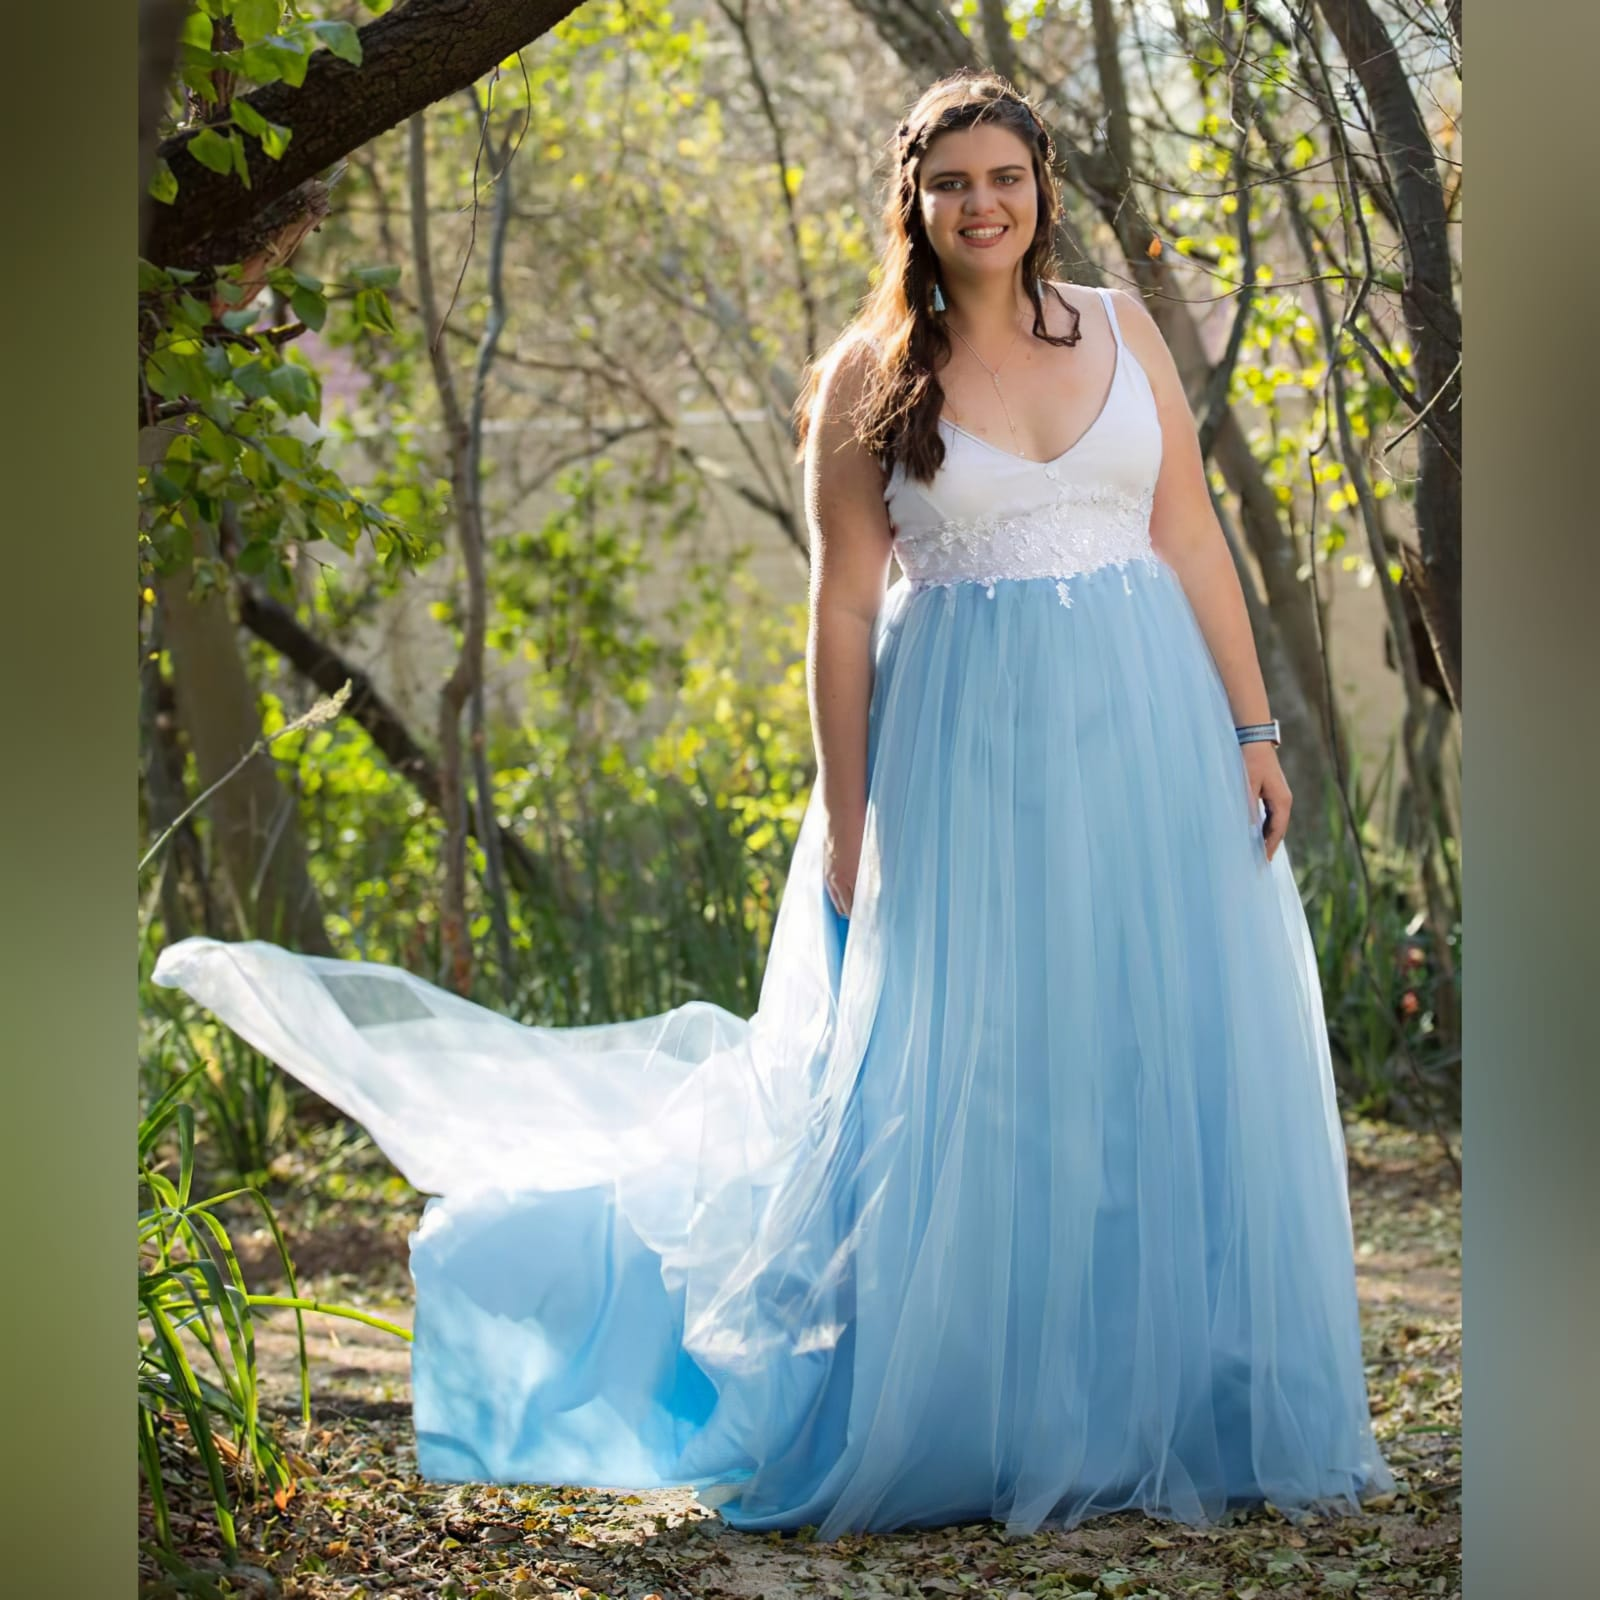 Powder blue and white prom ball gown dress 1 powder blue and white prom ball gown dress detailed with white 3d lace and beads with a low back and thin shoulder straps. With a train.